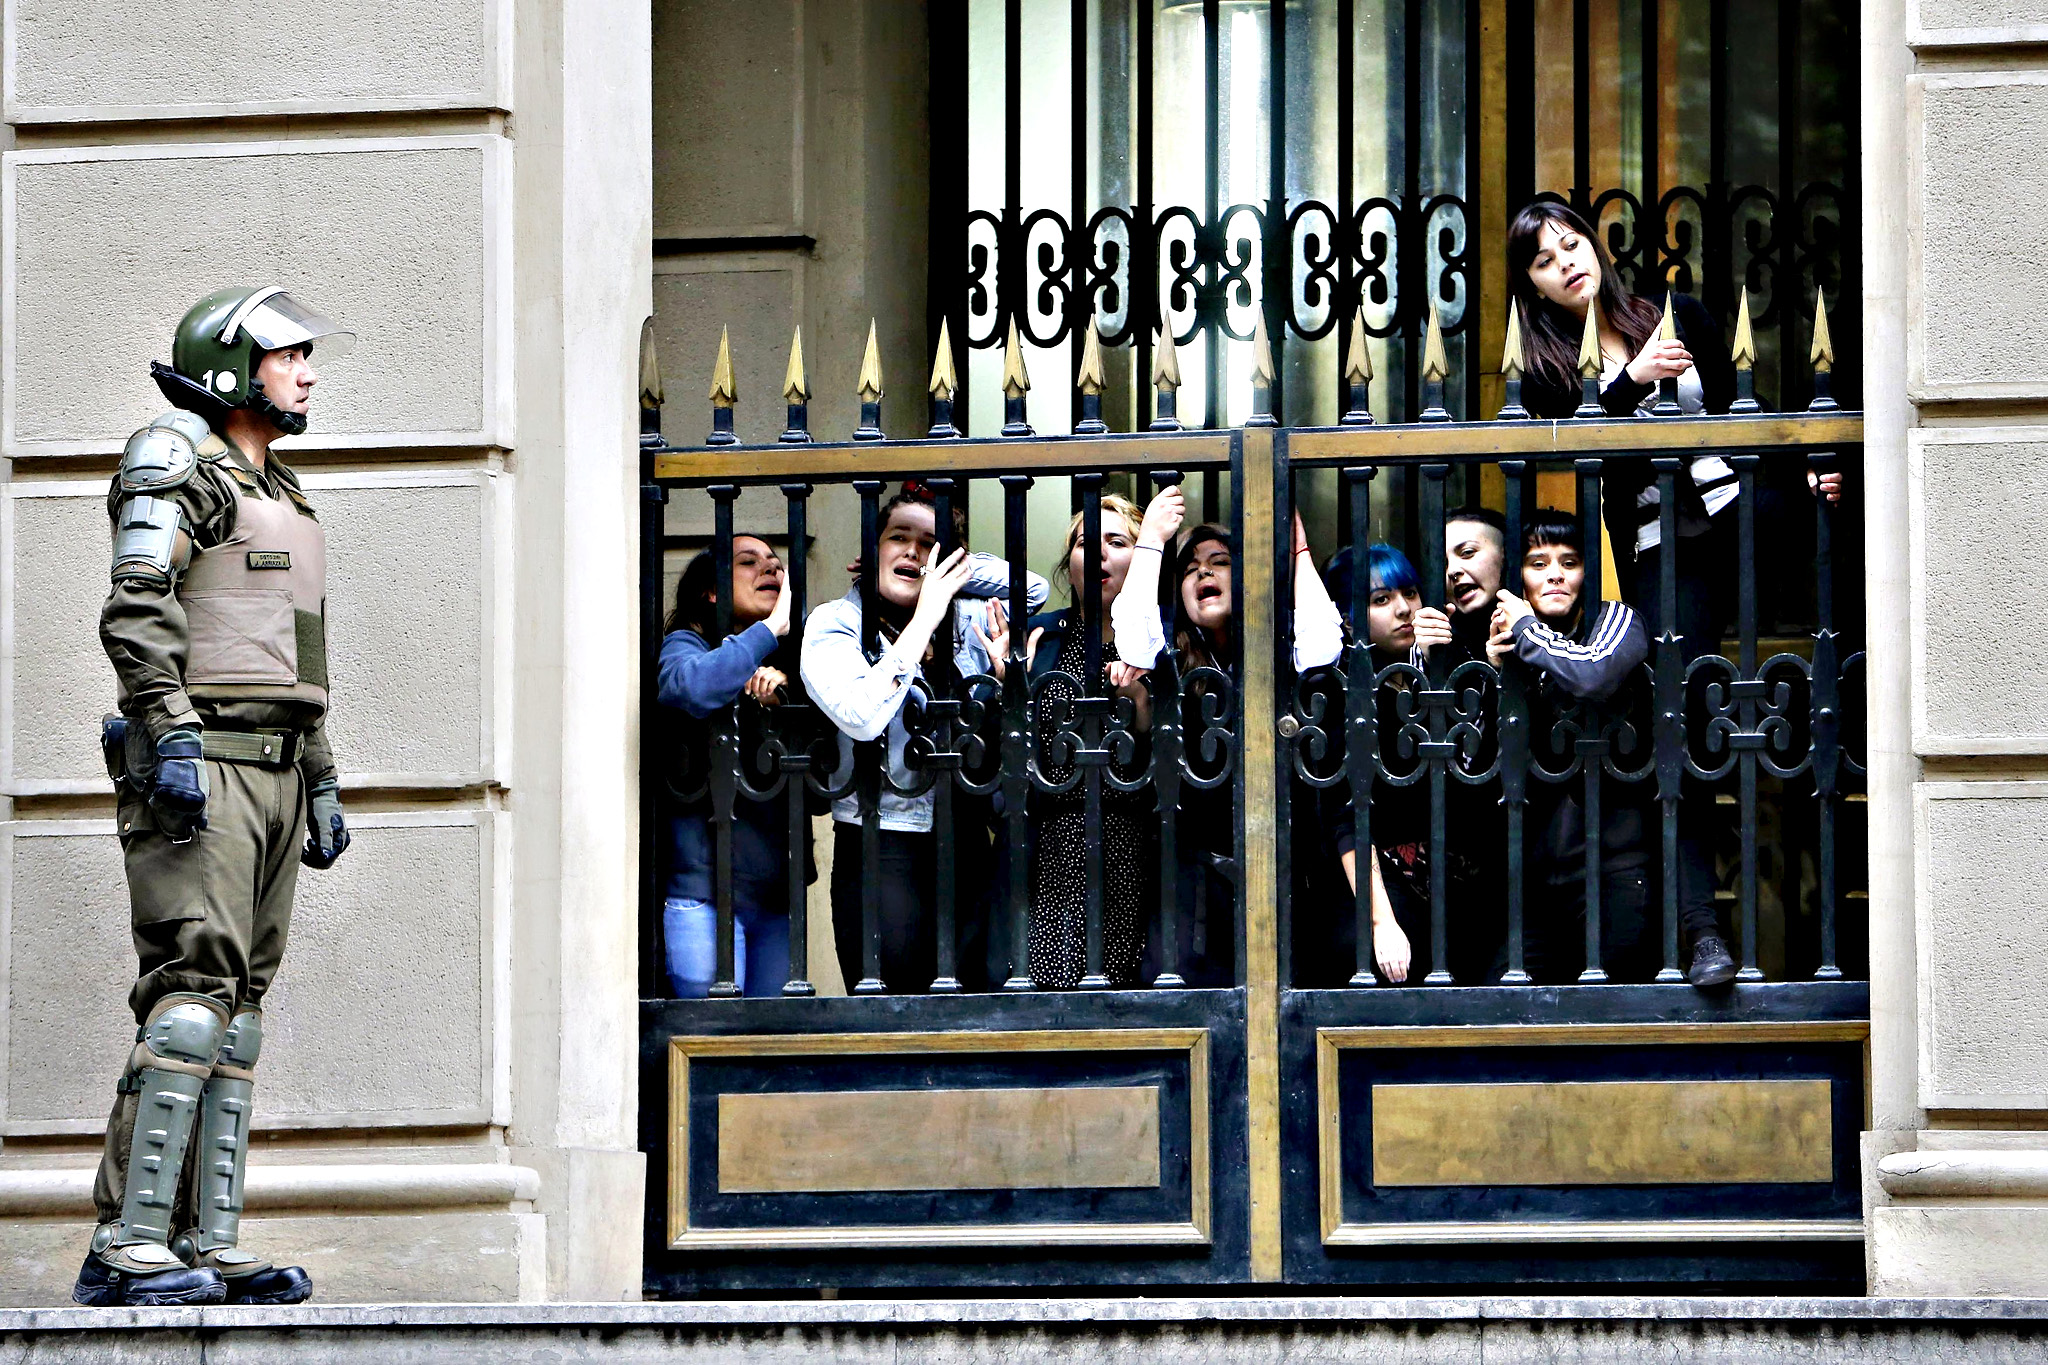 Students cling to a fence as they occupy the Finance Ministry in downtown Santiago, December 21, 2015. Student protesters occupied the building as part of a protest demanding changes in the education system